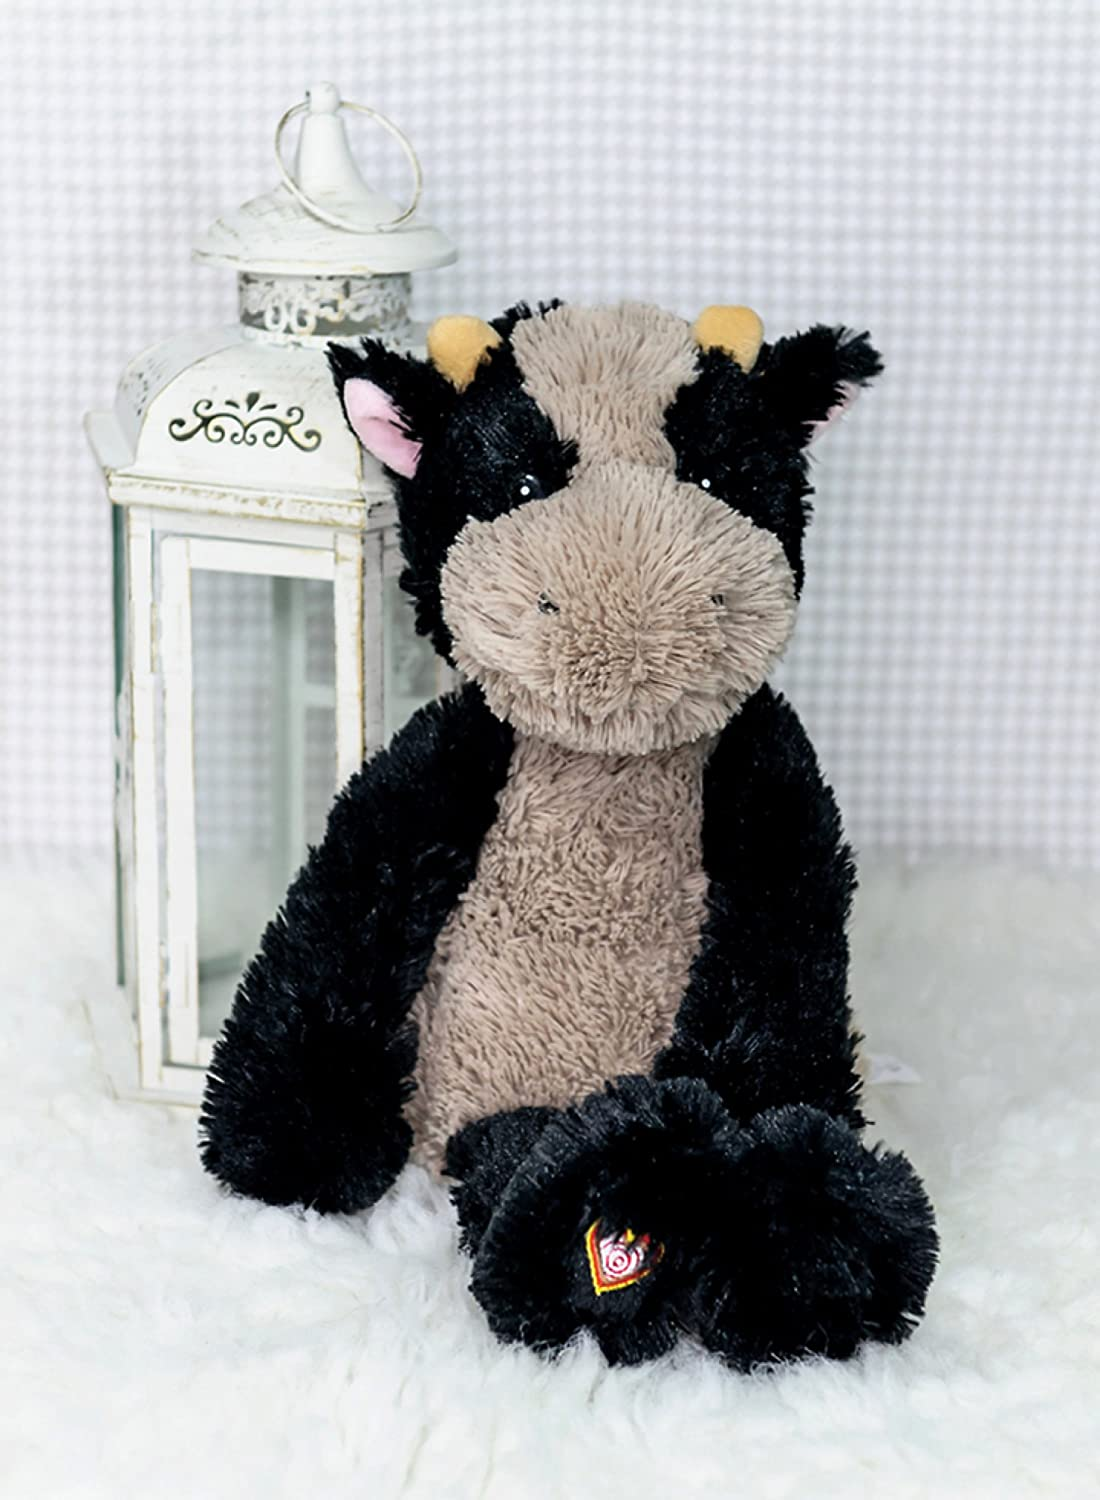 My Babys Heartbeat Bear Vintage Stuffed Cow With A 20 Second Voice Sound Recorder Keeps Your Babys Ultrasound Heartbeat Safe! Vintage Cow